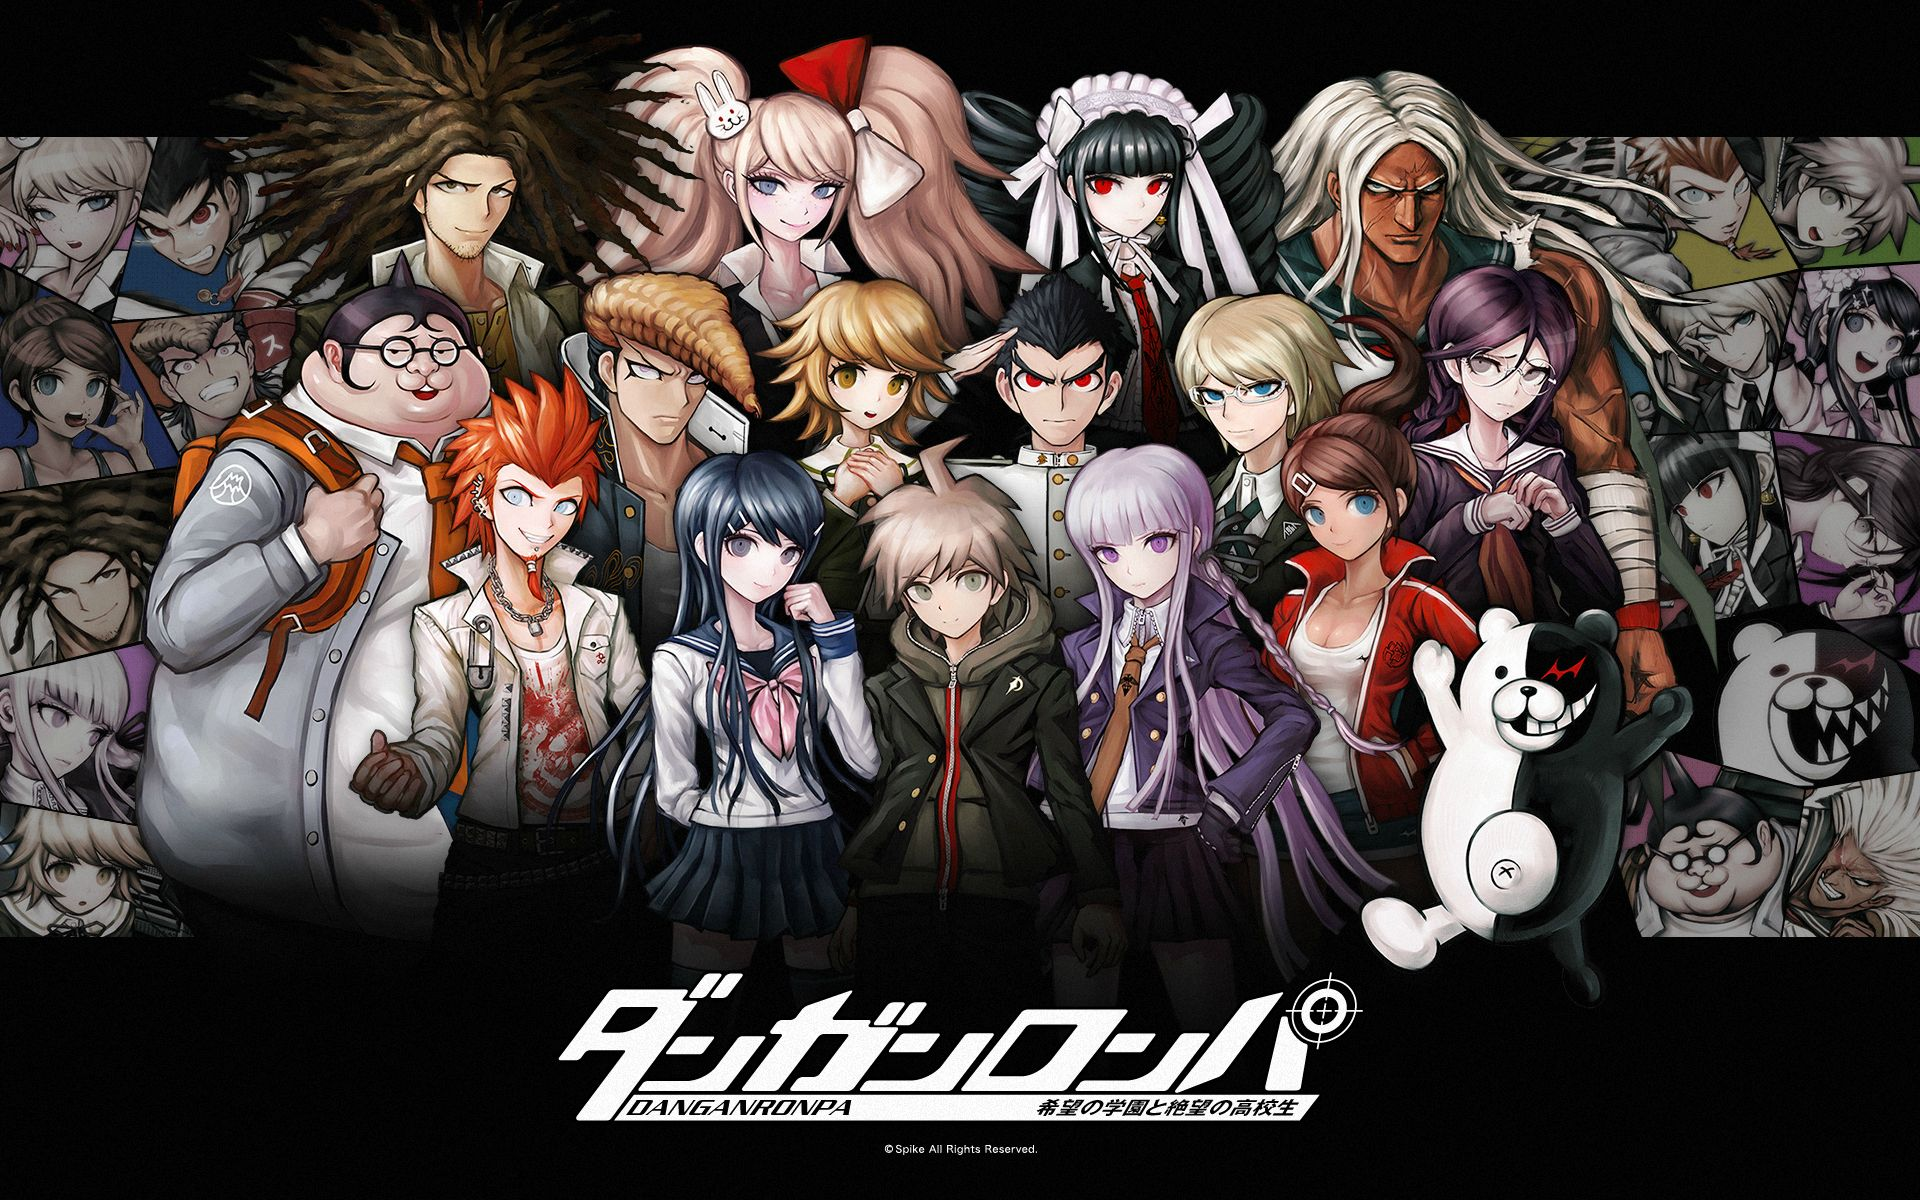 Danganropa (Cover) Danganronpa